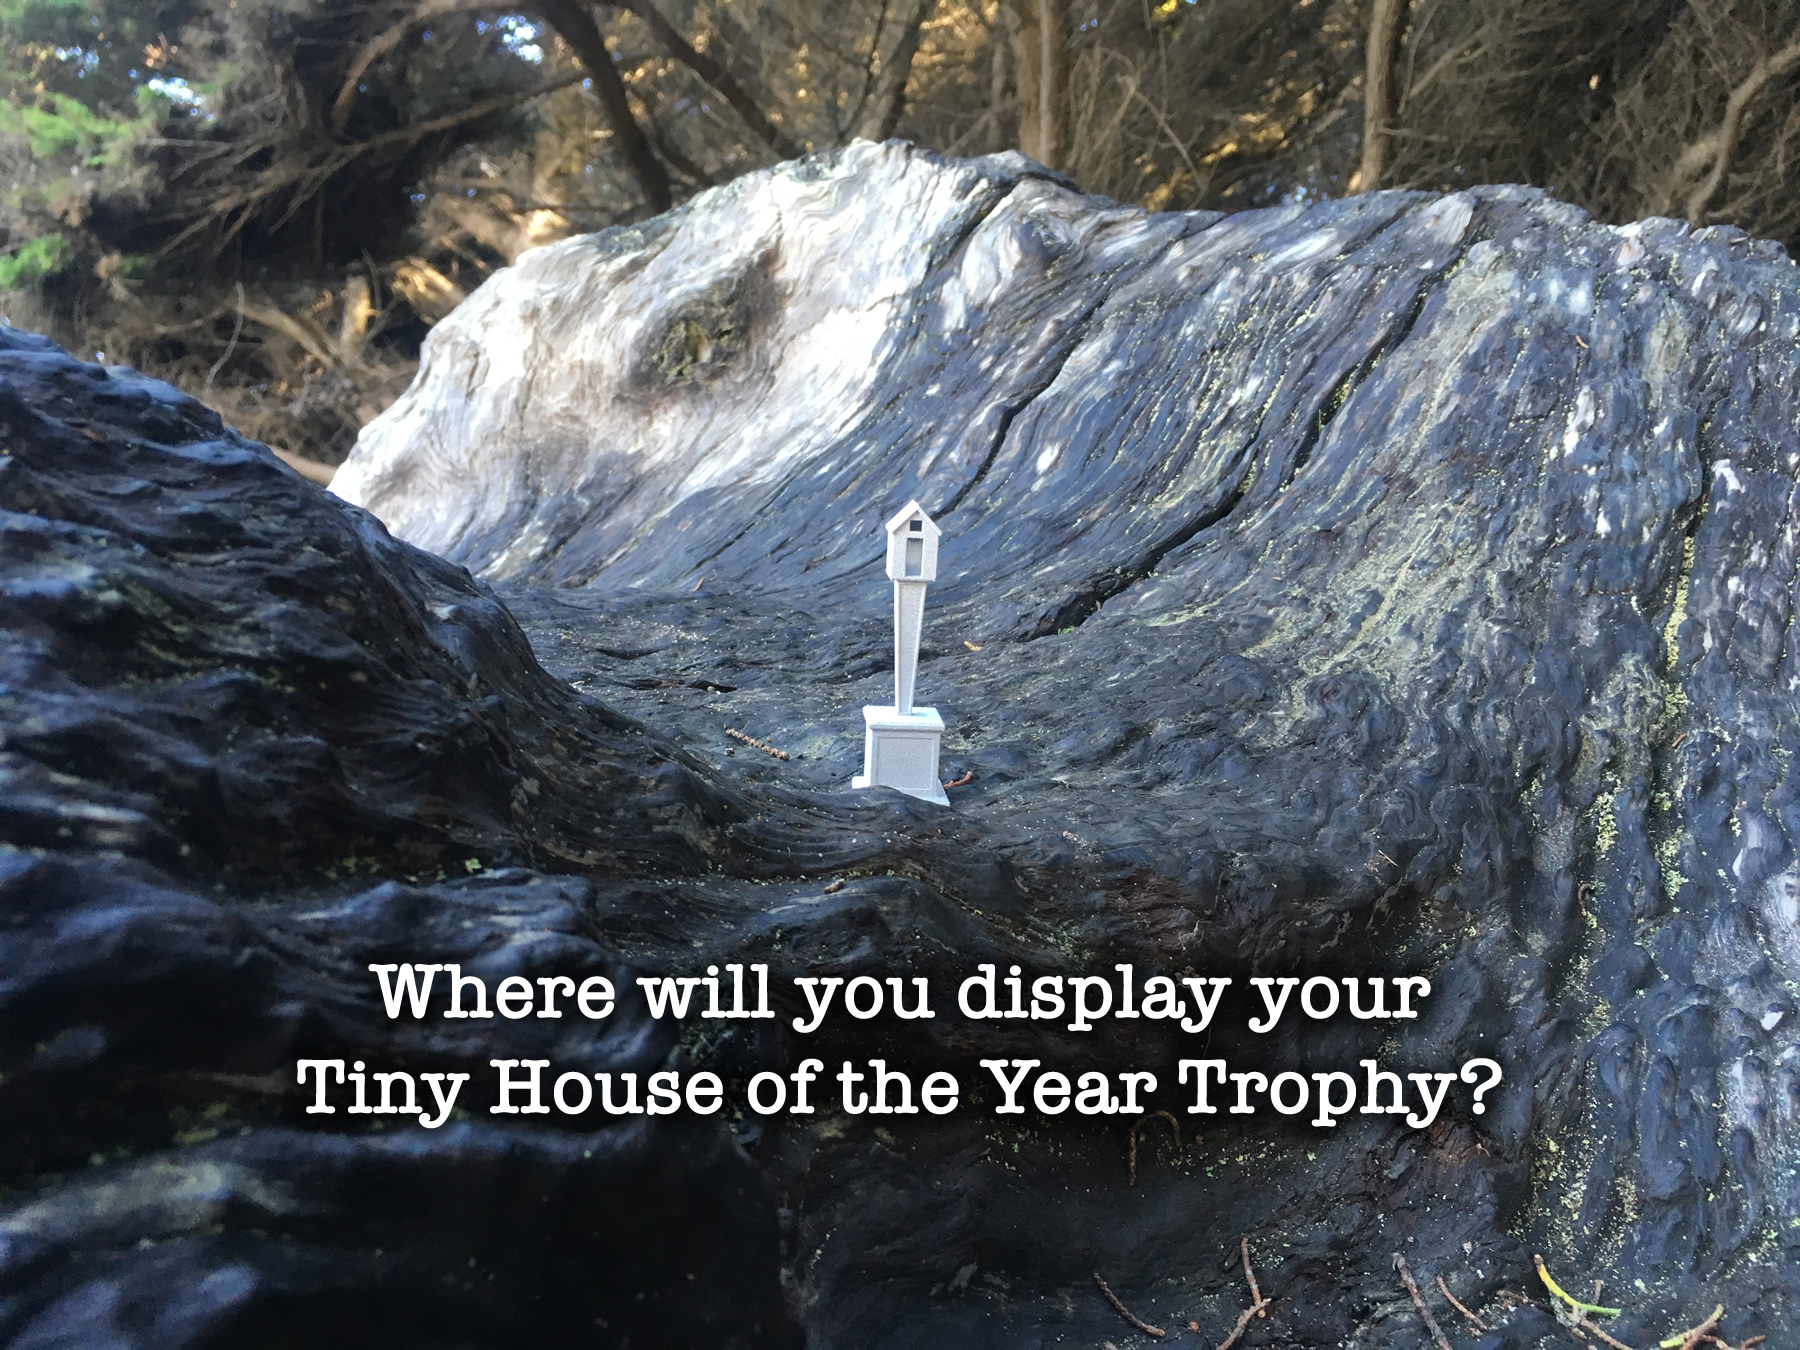 tiny-house-of-the-year-trophy-prototype-4